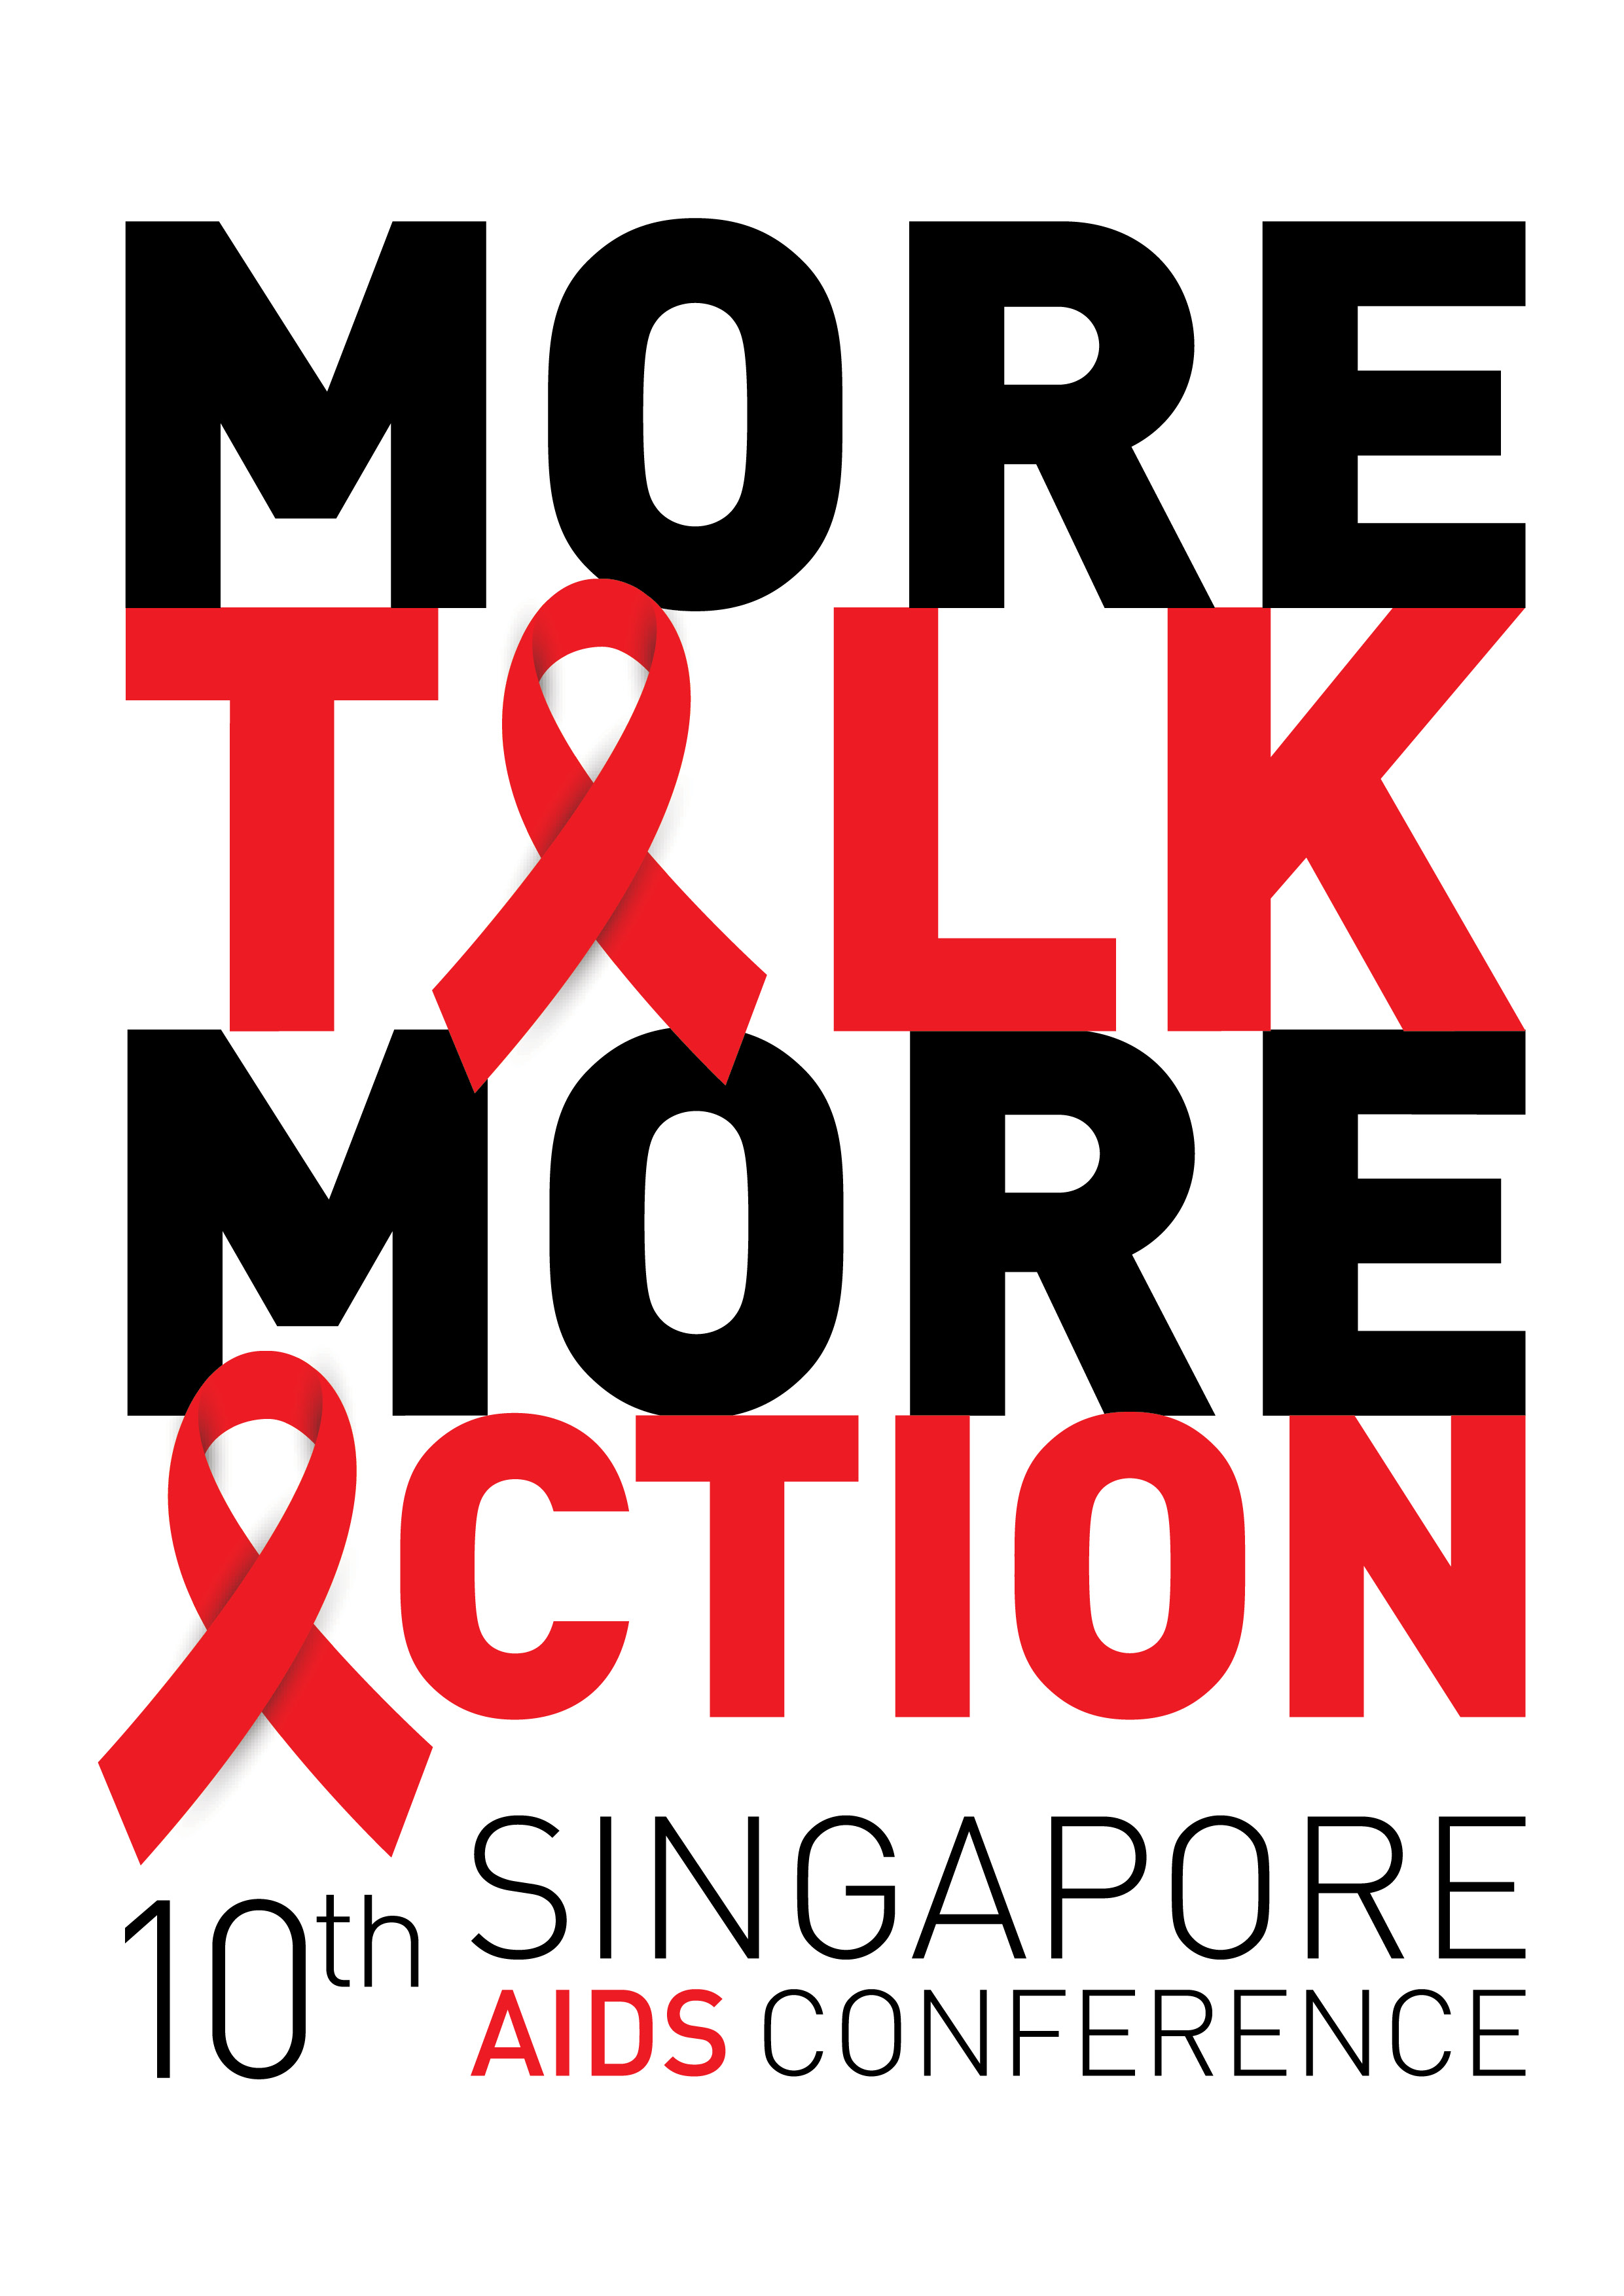 Singapore AIDS Conference 2016